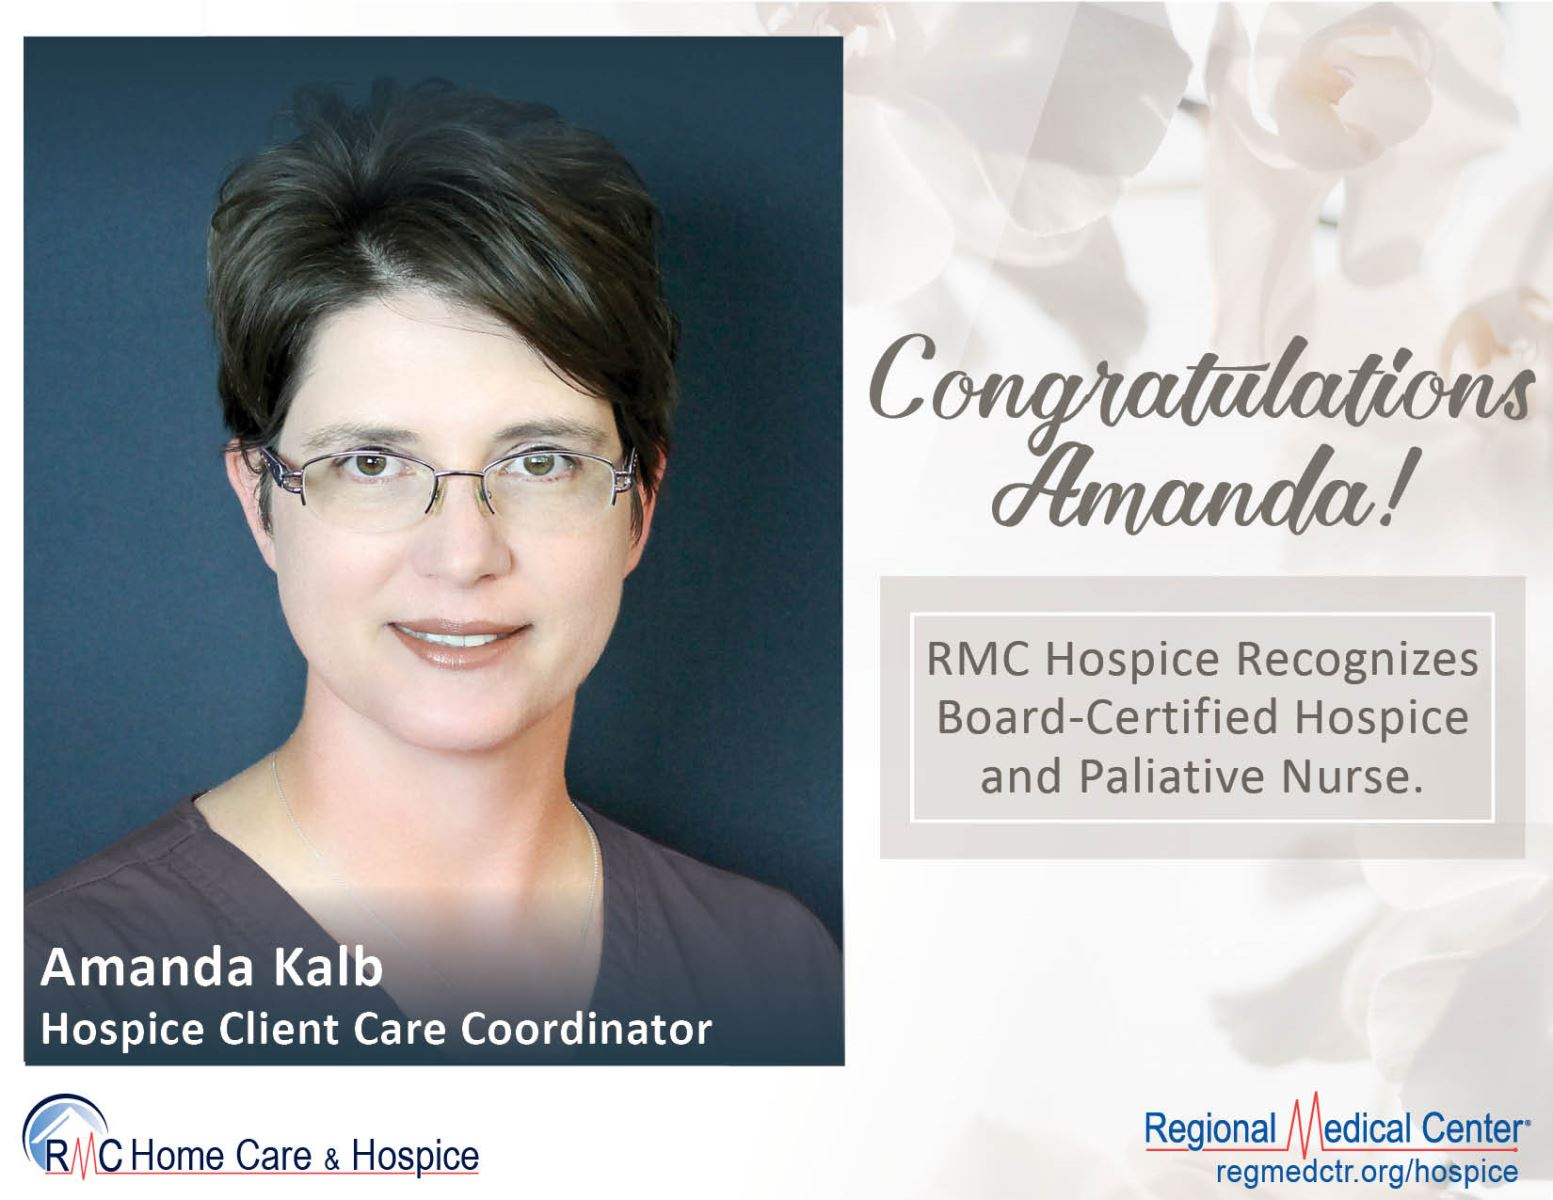 Rmc Hospice Recognizes Amanda Kalb Board Certified Hospice And